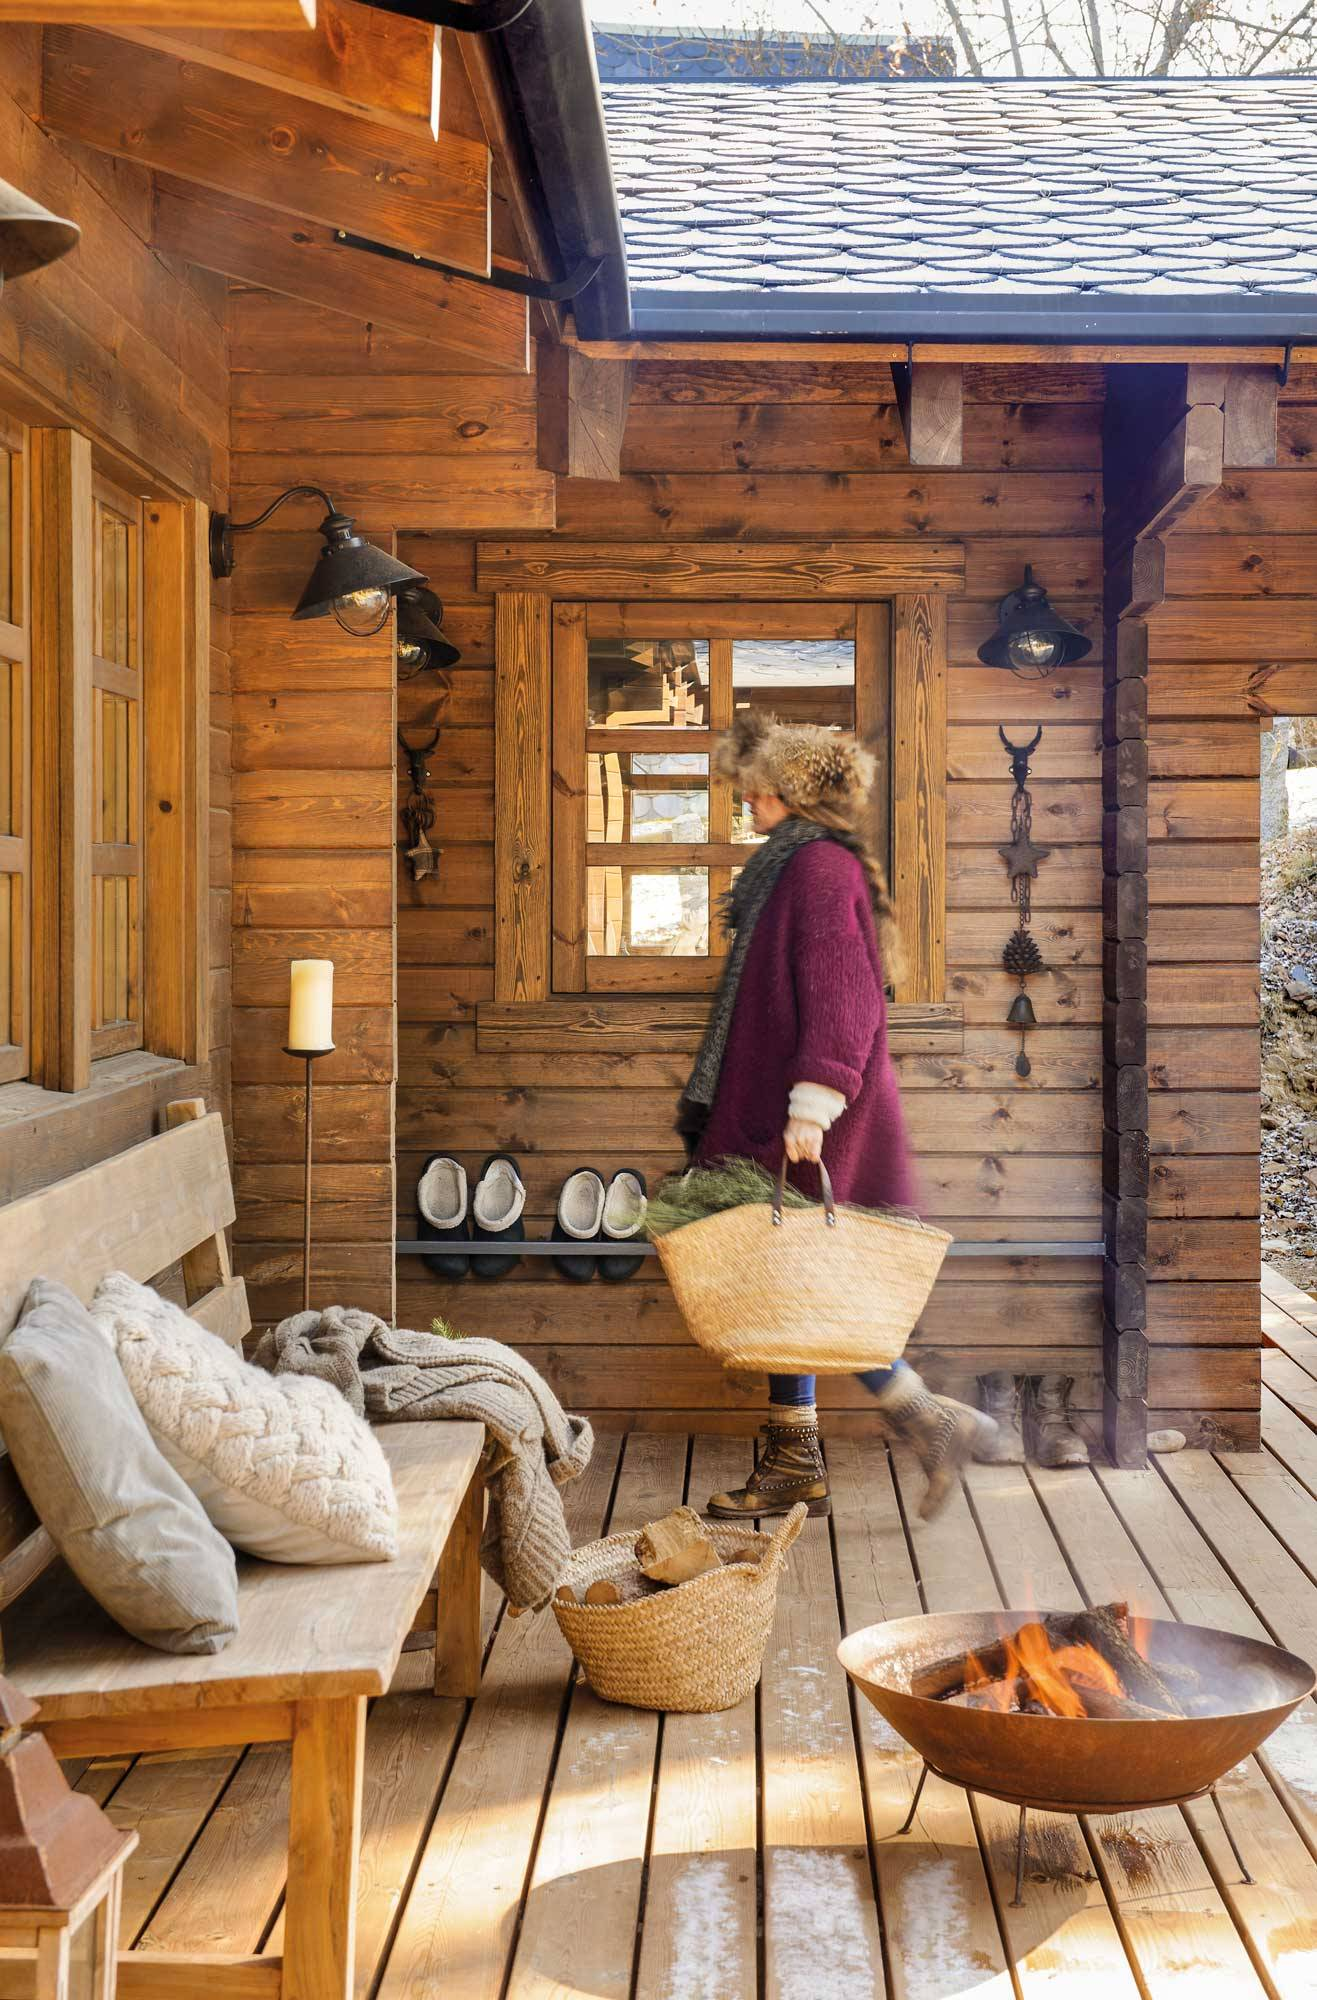 entrance-to-wooden-house-00474715. 10. This cabin is a dream come true